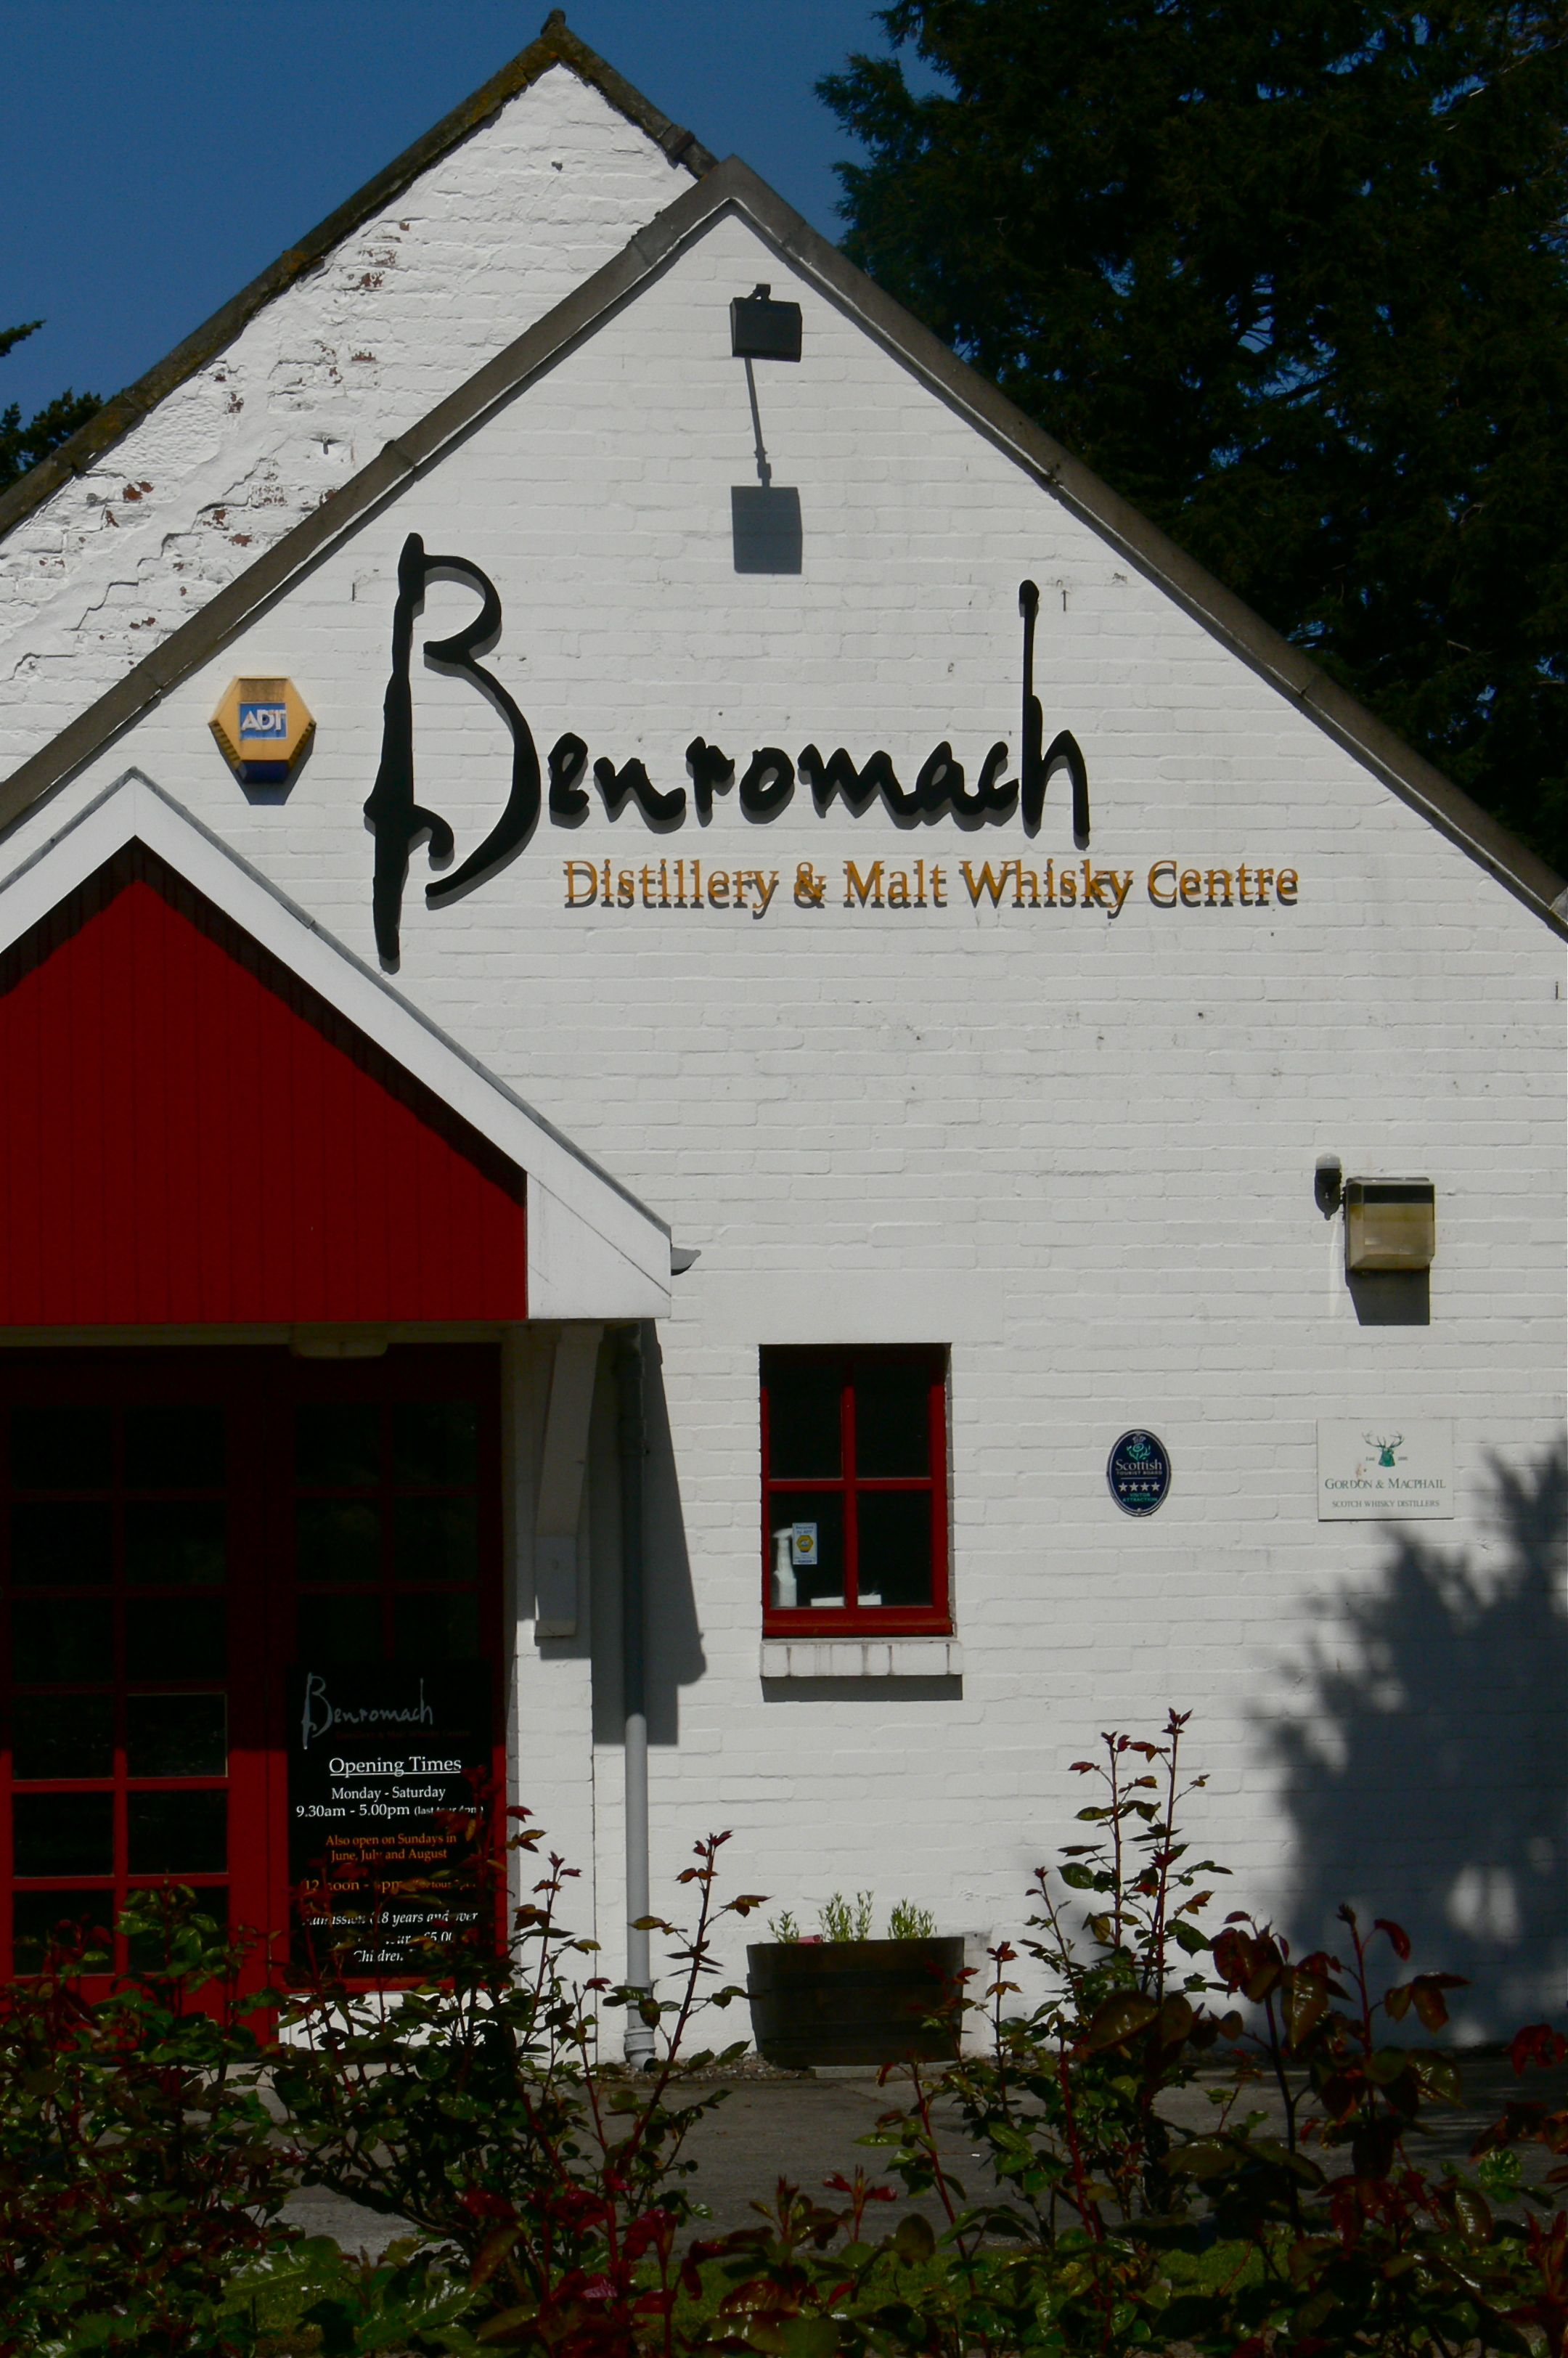 Benromach Front